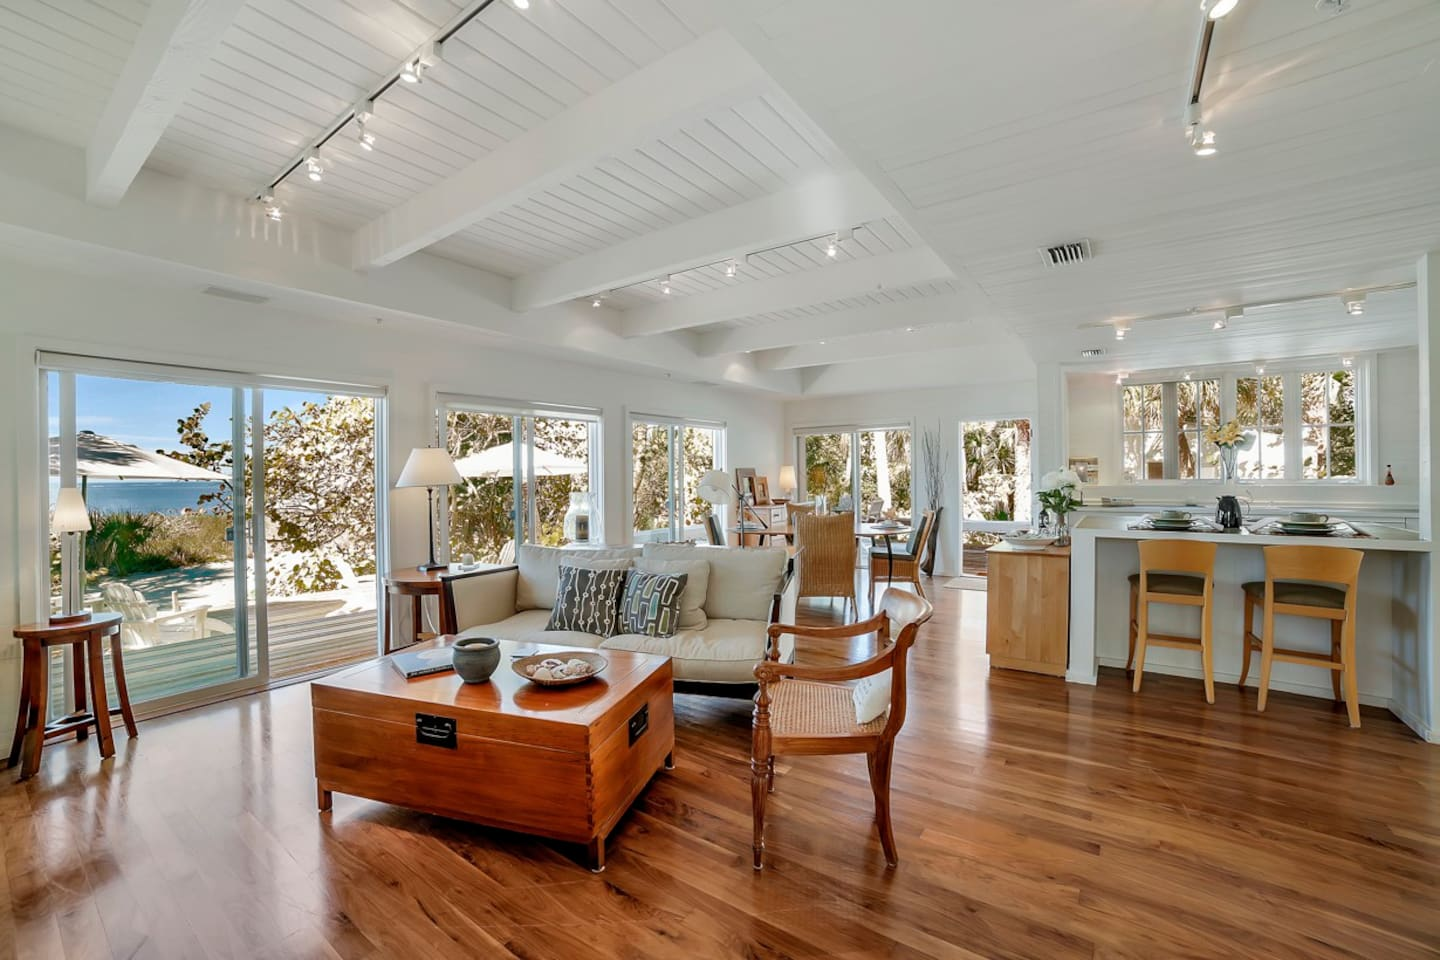 Big House: Great Room, overlooking the Gulf of Mexico and sun porch